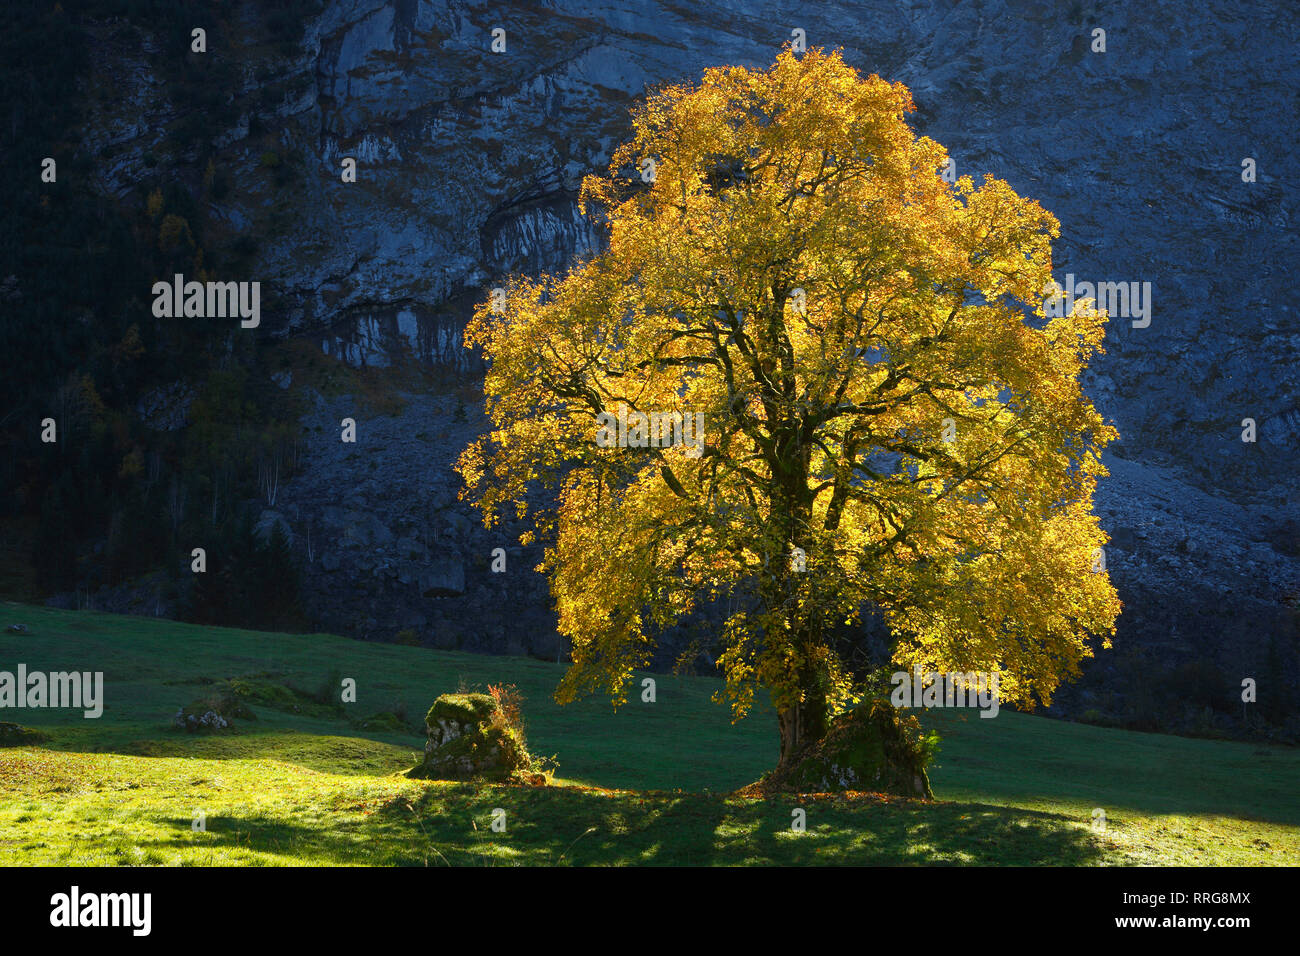 La botánica, Celta maple, Acer pseudoplatanus, Suiza, Additional-Rights-Clearance-Info-Not-Available Foto de stock